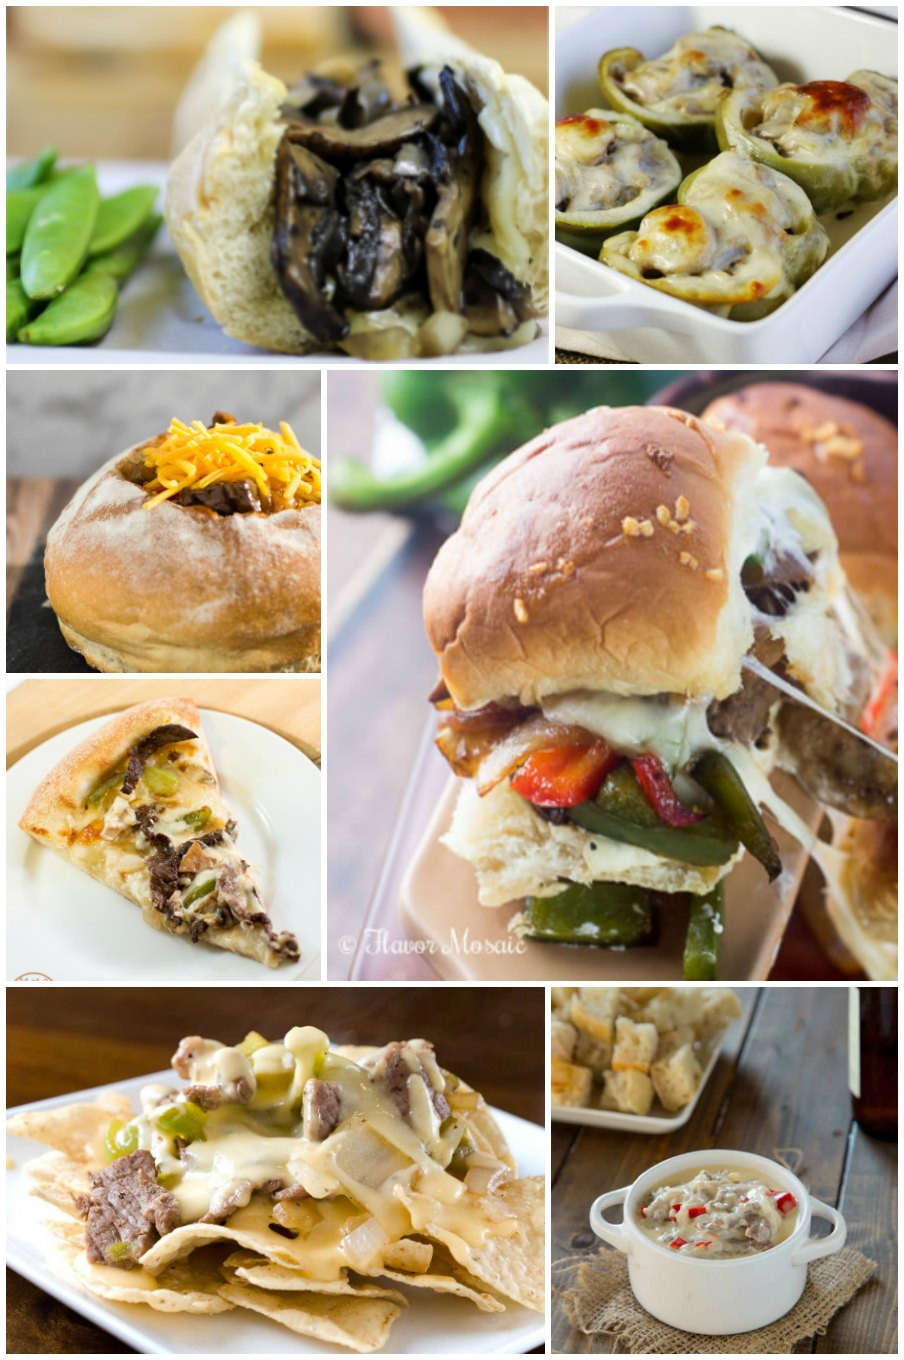 Thursday, March 24th is National Philadelphia Cheesesteak Day! To celebrate, try one of these 25 variations on the city's iconic sandwich.